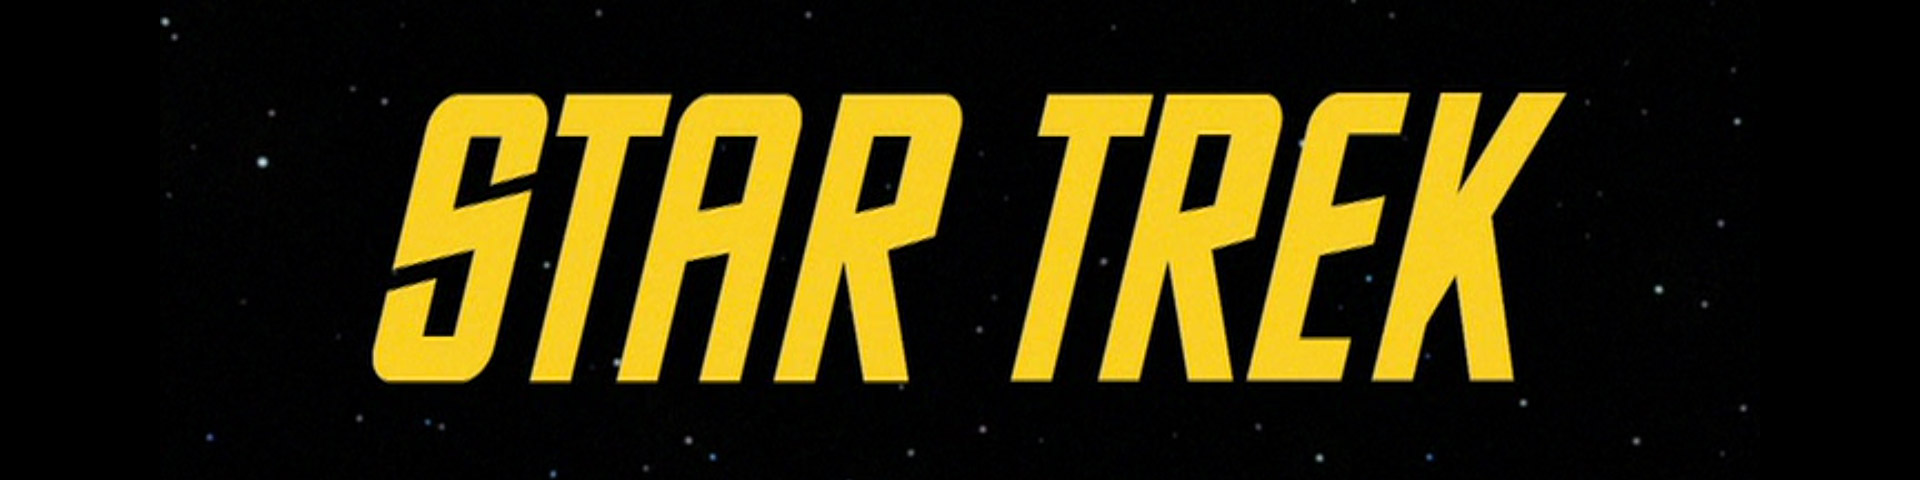 ™ & © 2016 CBS Studios Inc. – The Star Trek logo as seen in the title sequences of the original series.